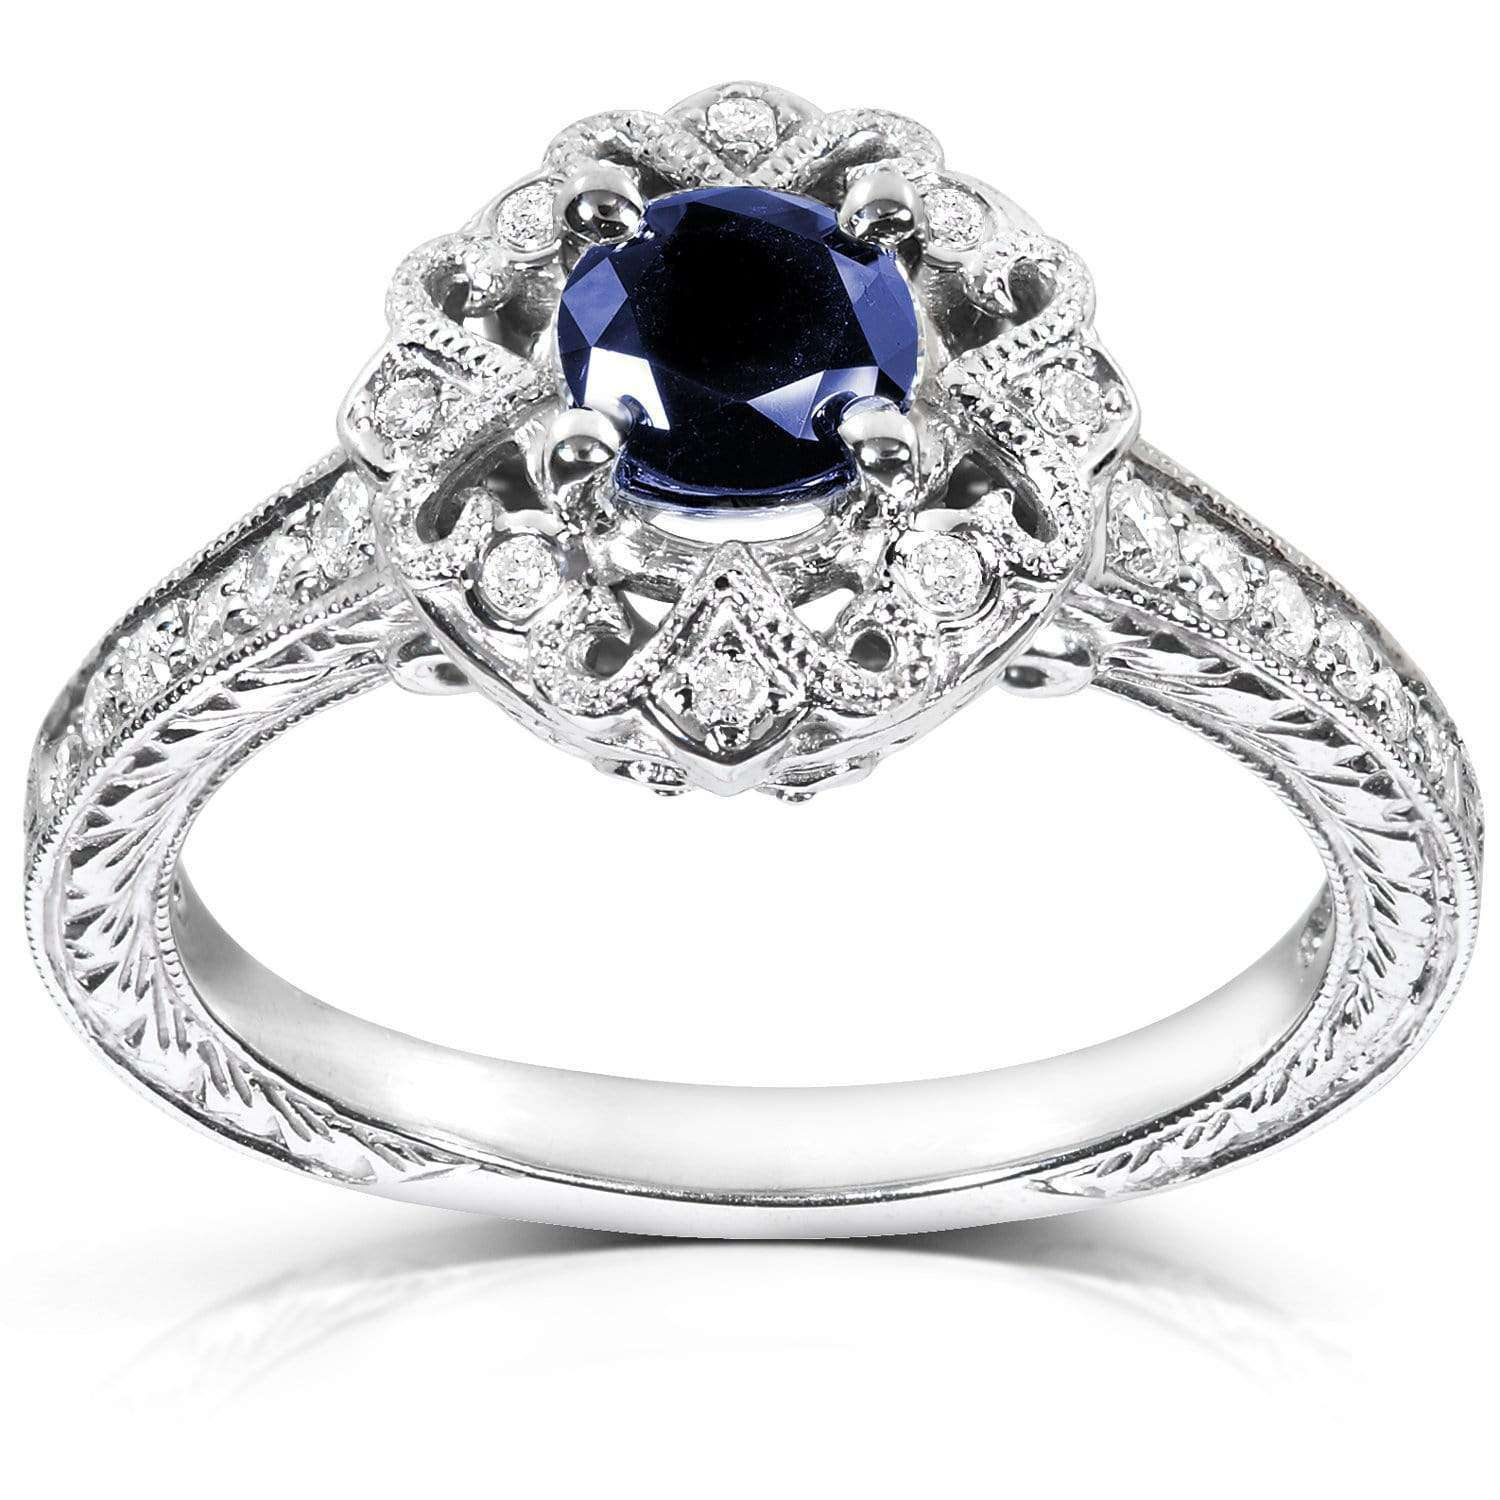 Coupons Antique Round-cut Sapphire and Diamond Engagement Ring 3/4 Carat (ctw) in 14k White Gold - 10.5